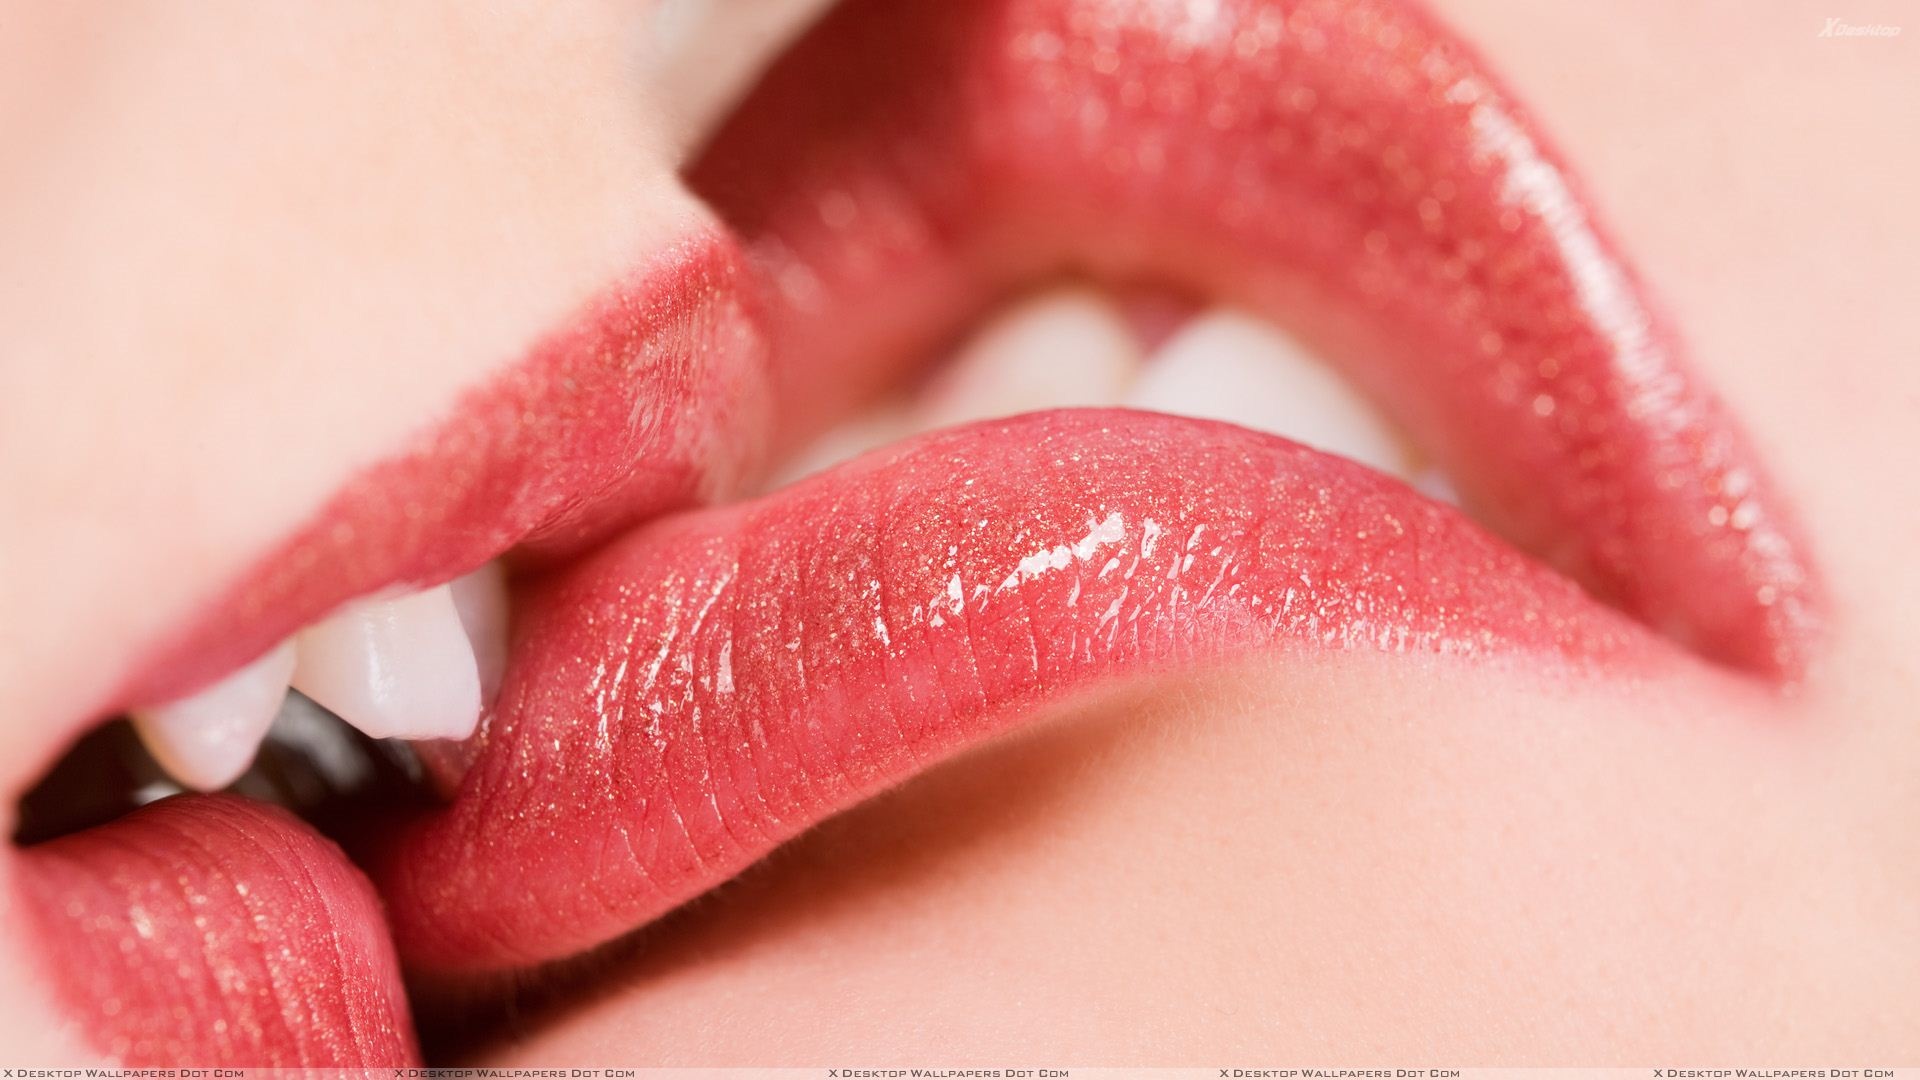 Hd wallpaper kiss - Kissing Wallpapers Photos Images In Hd